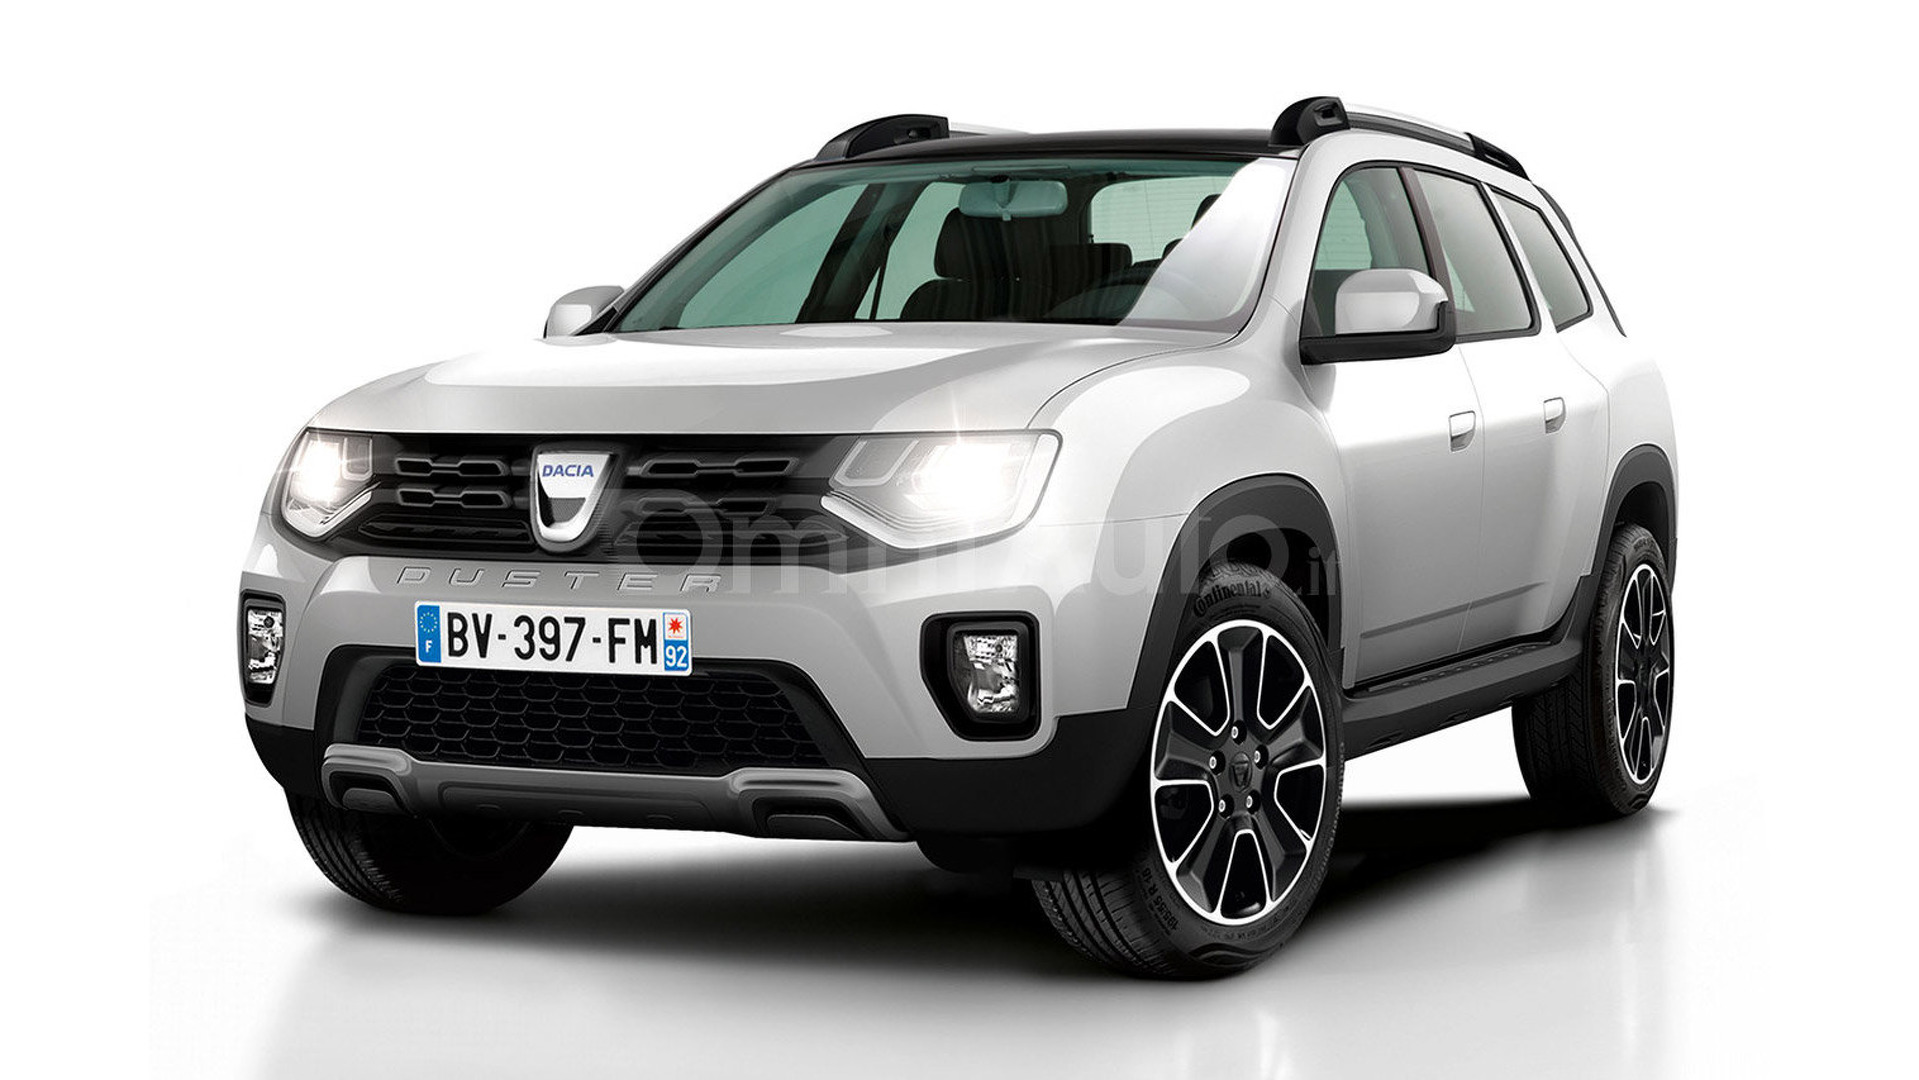 2017 Dacia Duster gets rendered